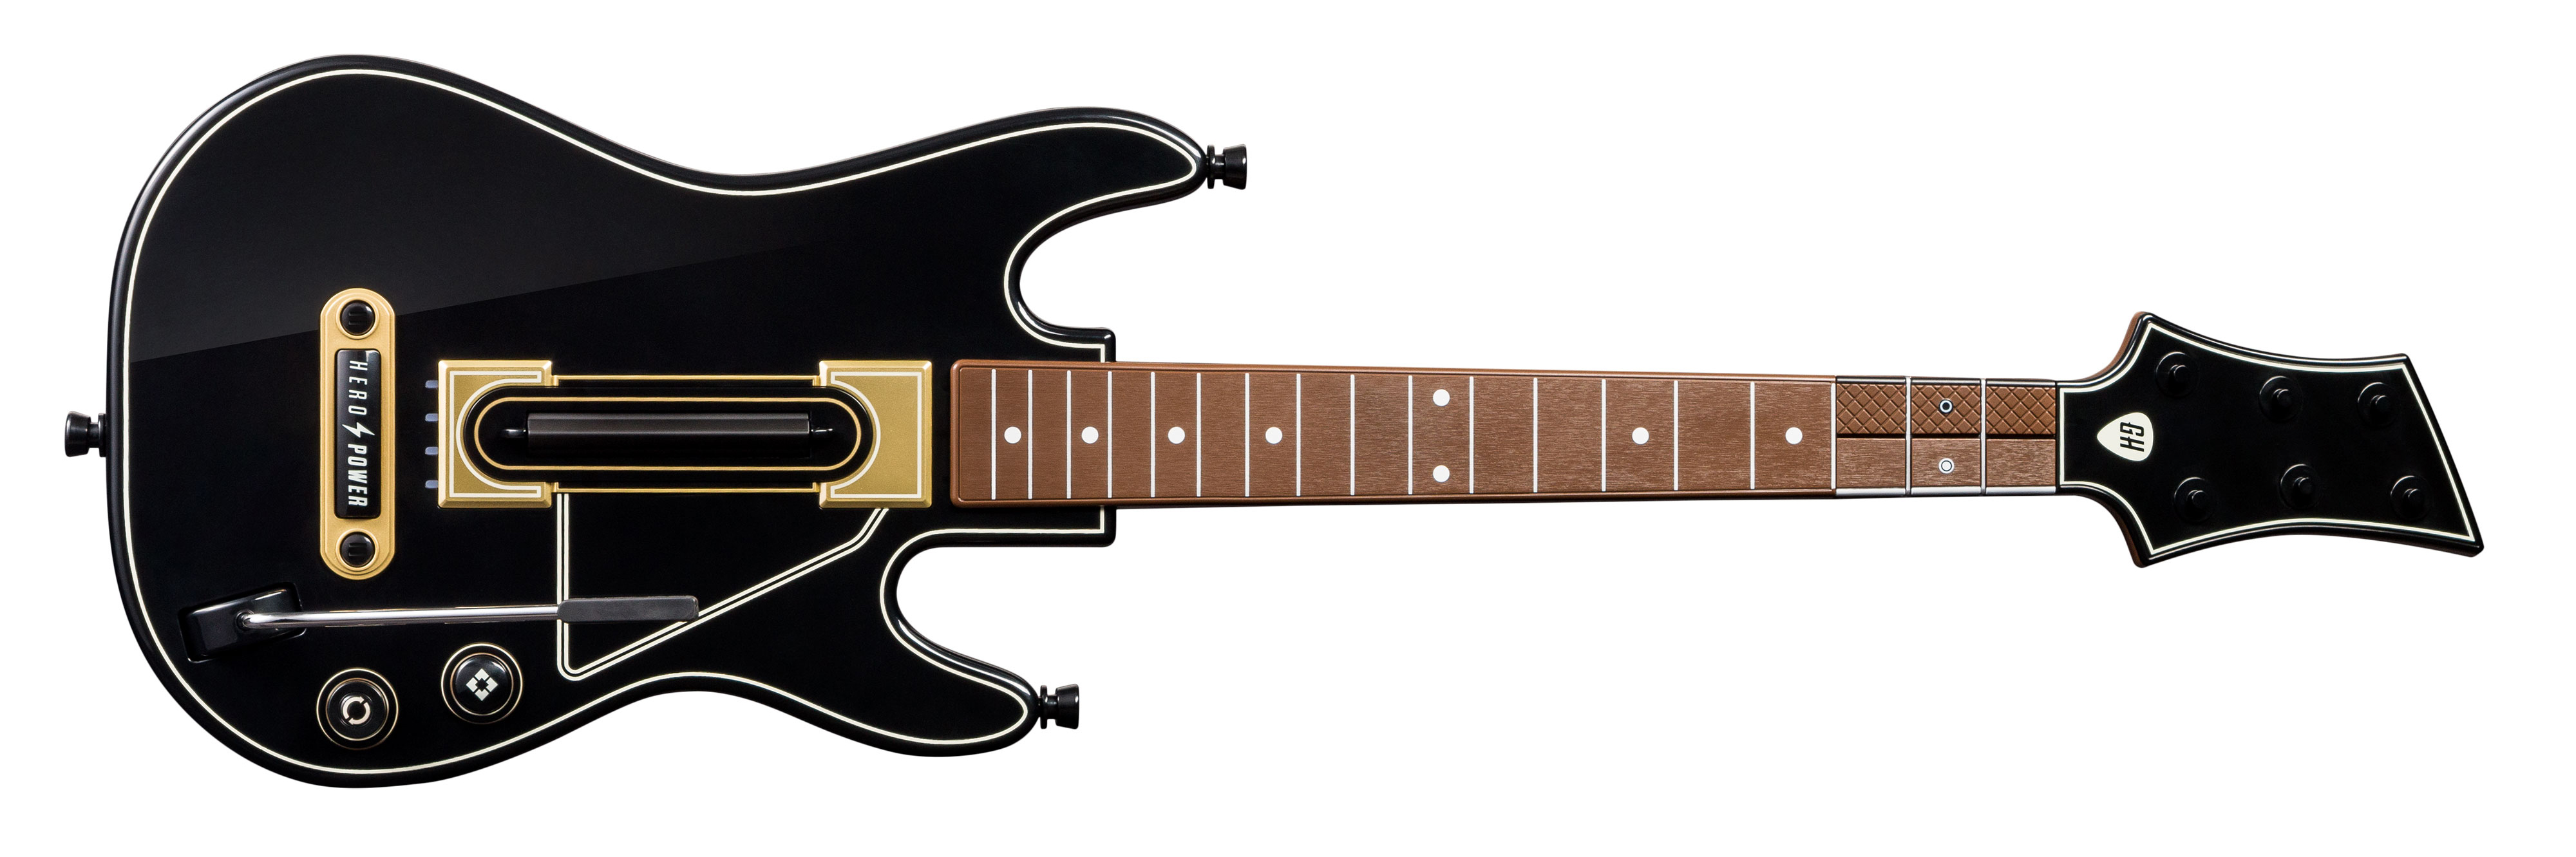 The new <em>Guitar Hero Live</em> guitar, complete with its six stacked buttons.